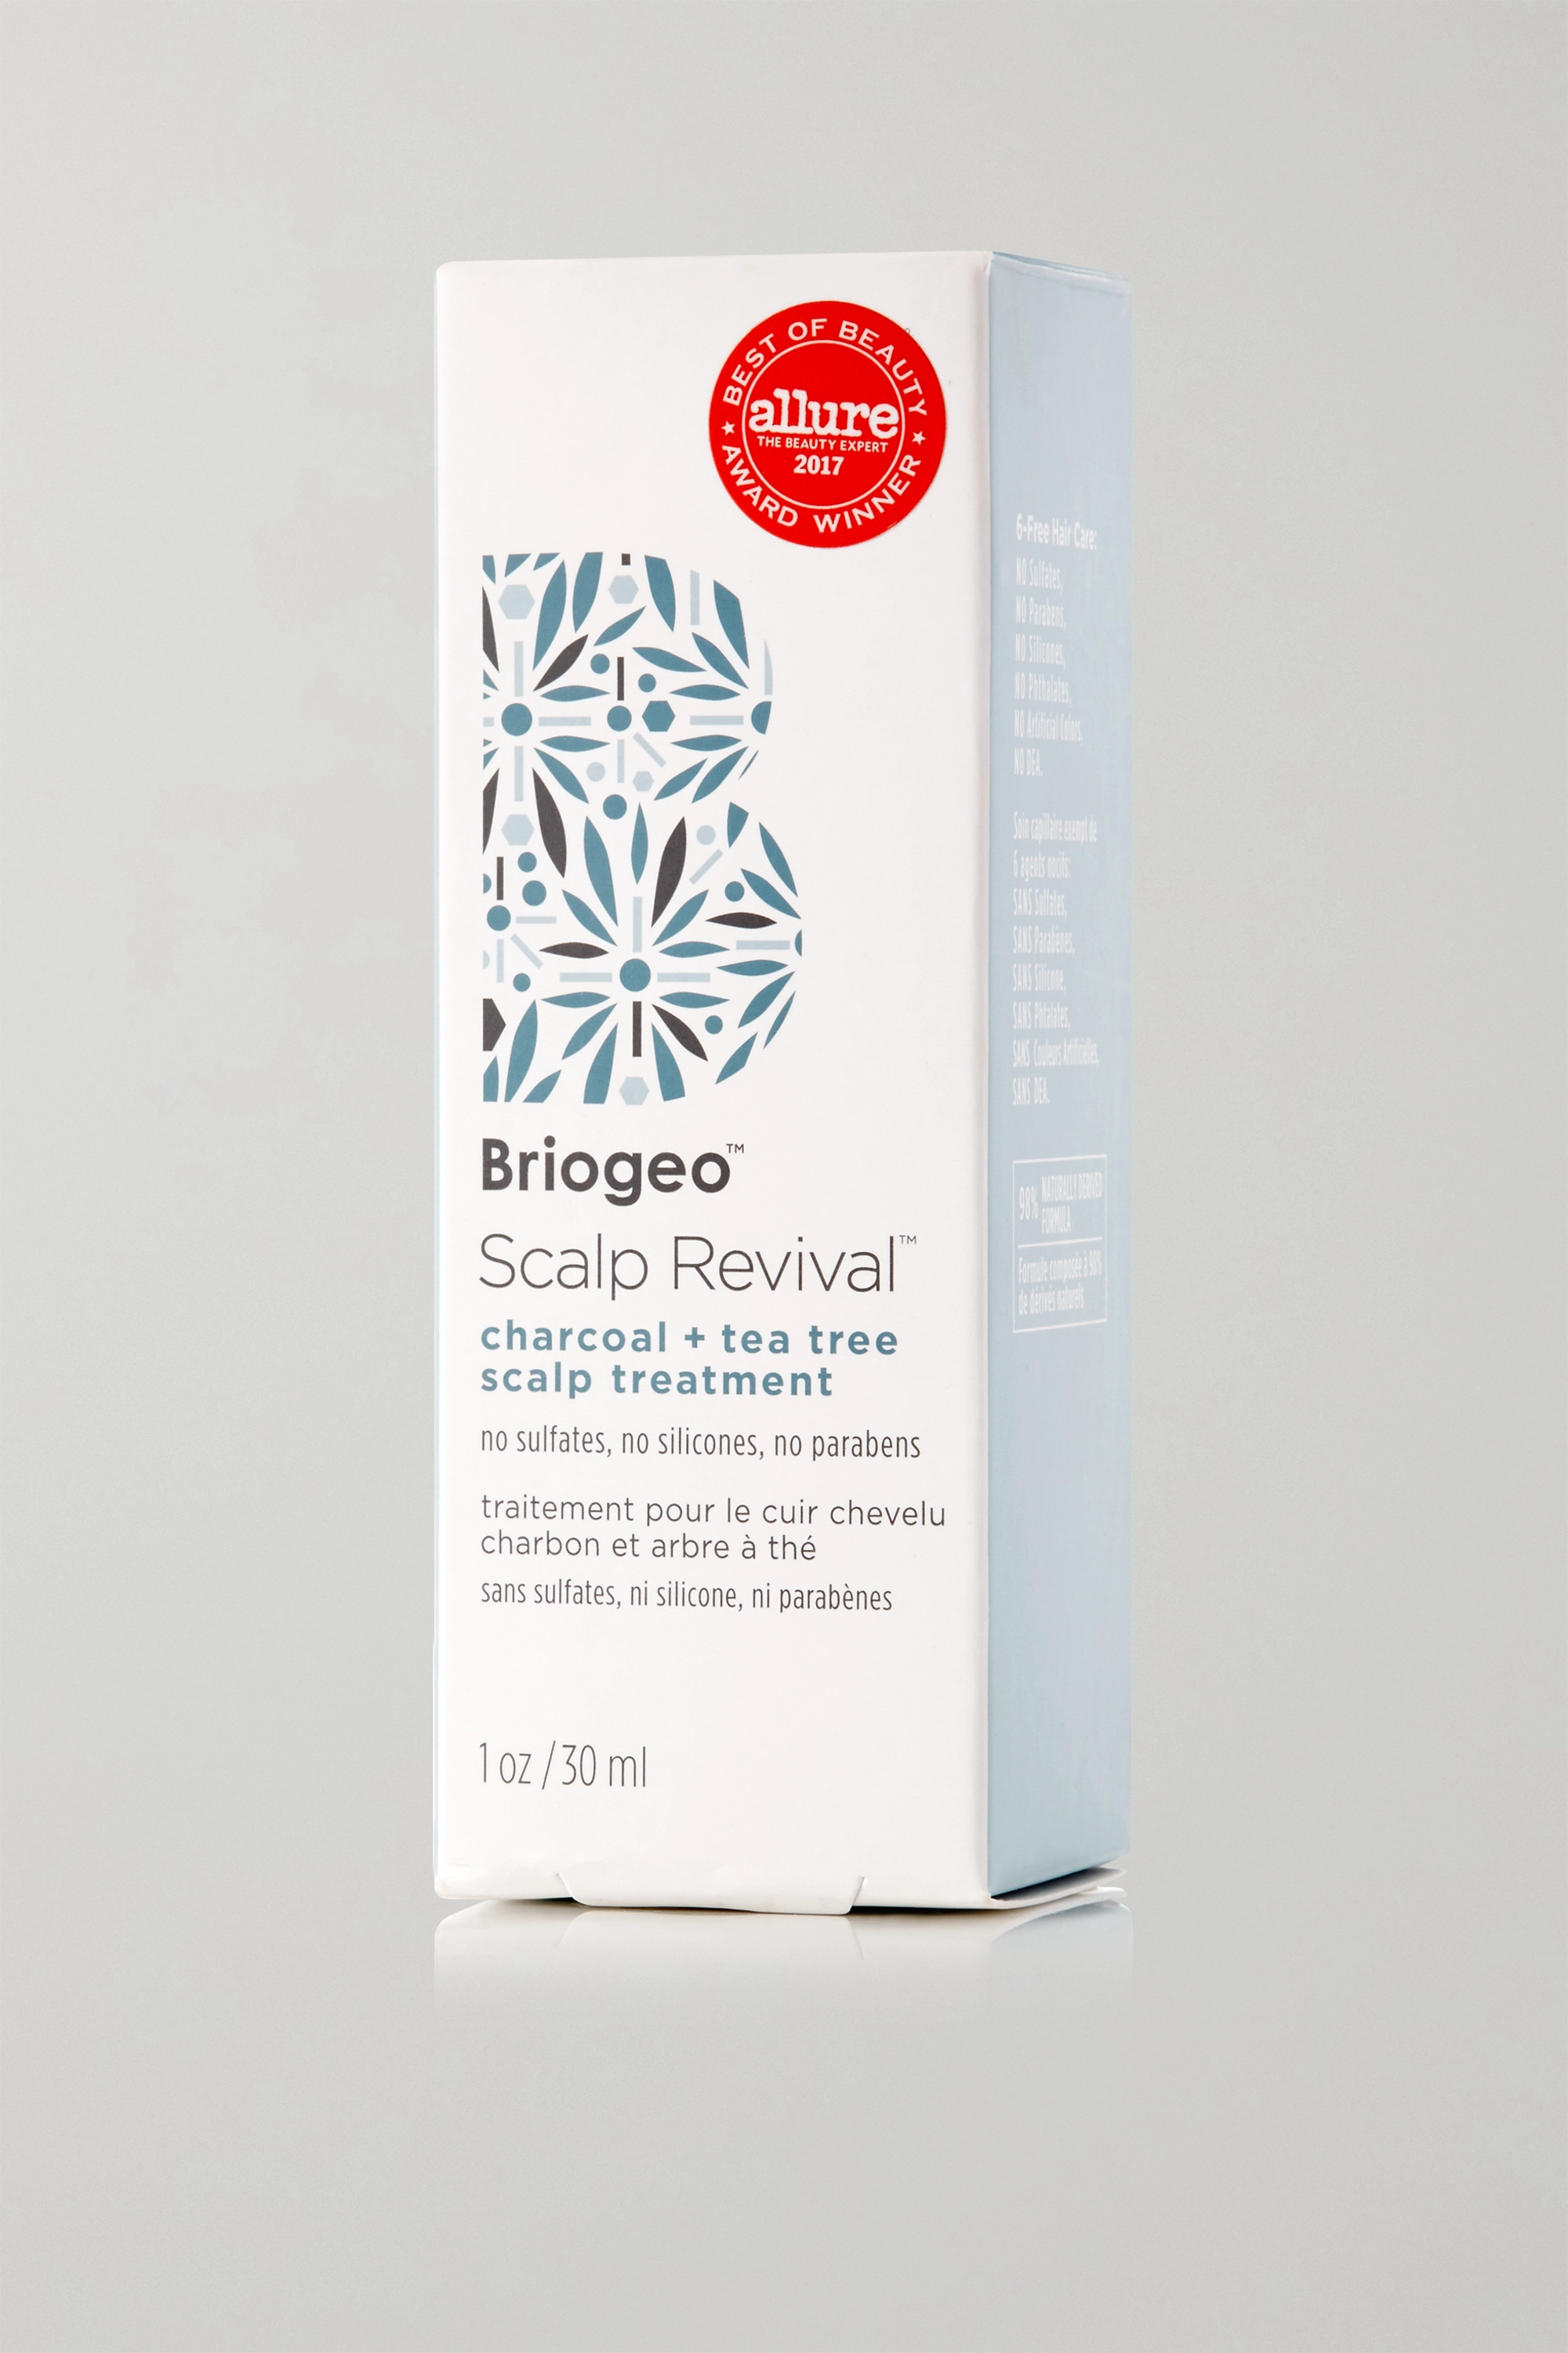 BRIOGEO Scalp Revival Charcoal + Tea Tree Scalp Treatment, 30ml